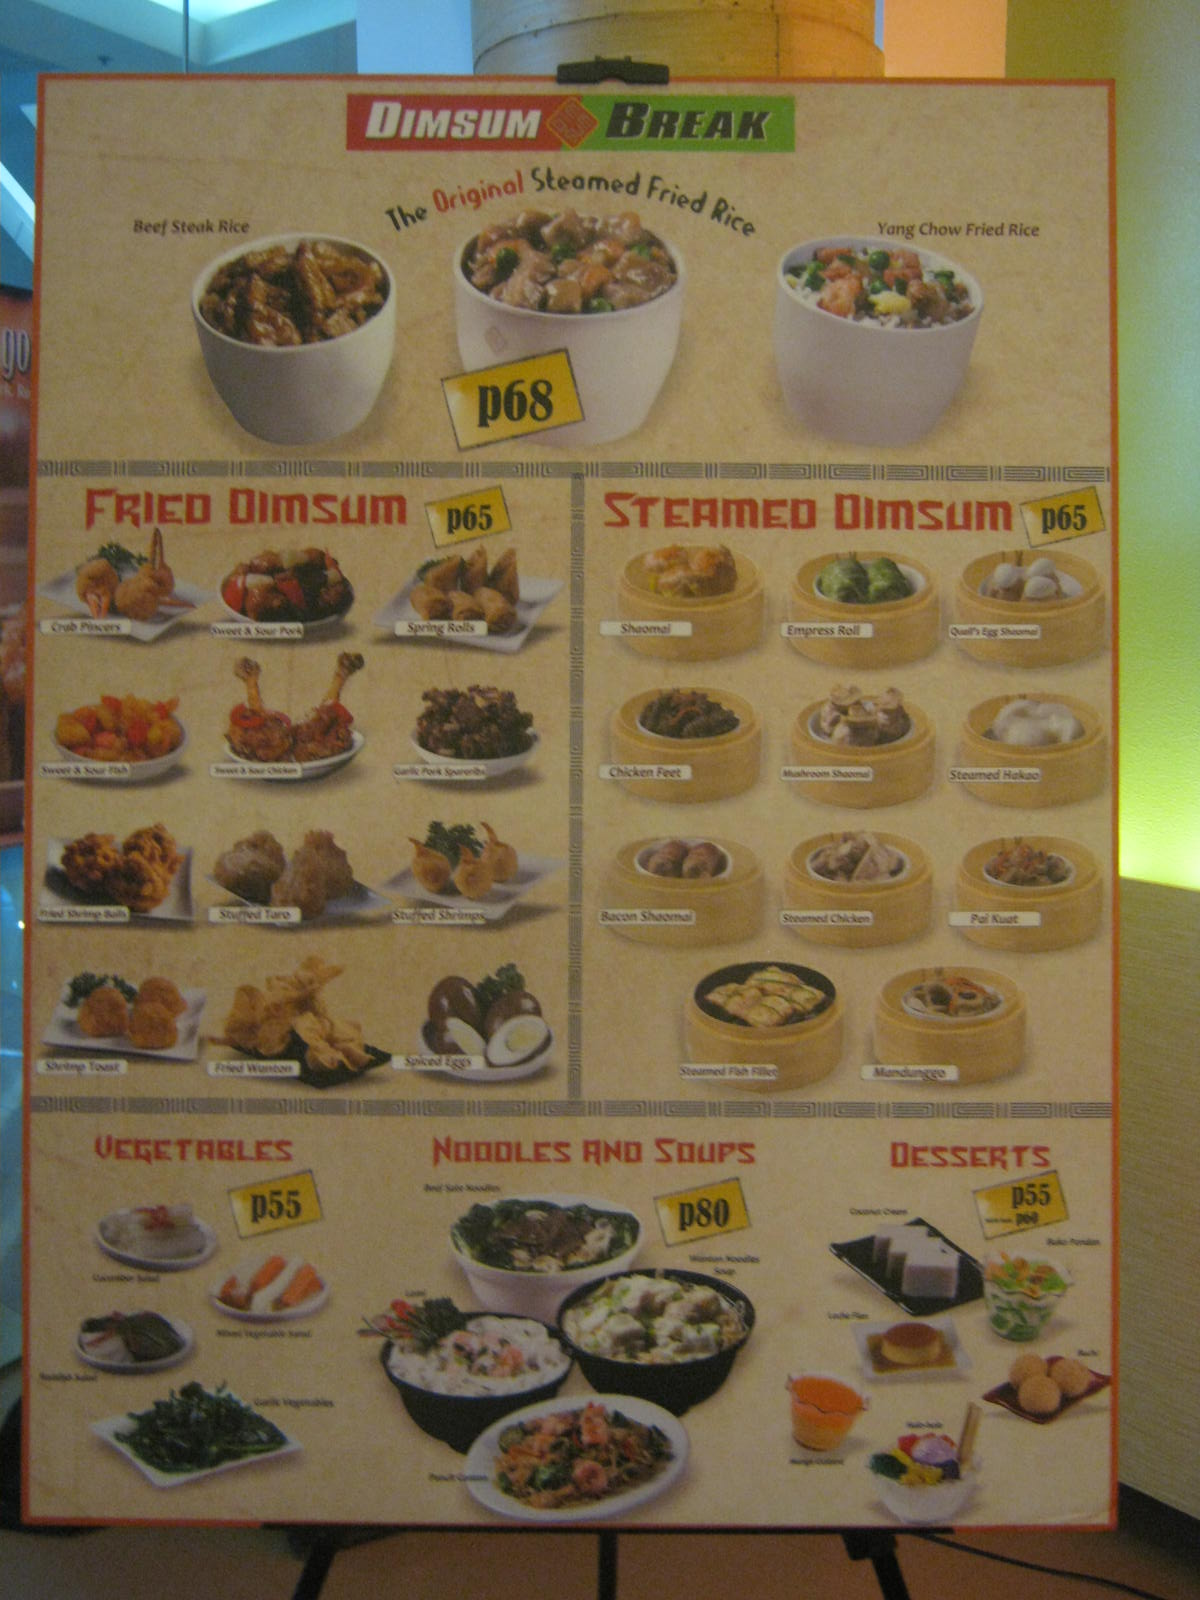 Dimsum Break Opens at SM North EDSA ~ Wazzup Pilipinas News and Events